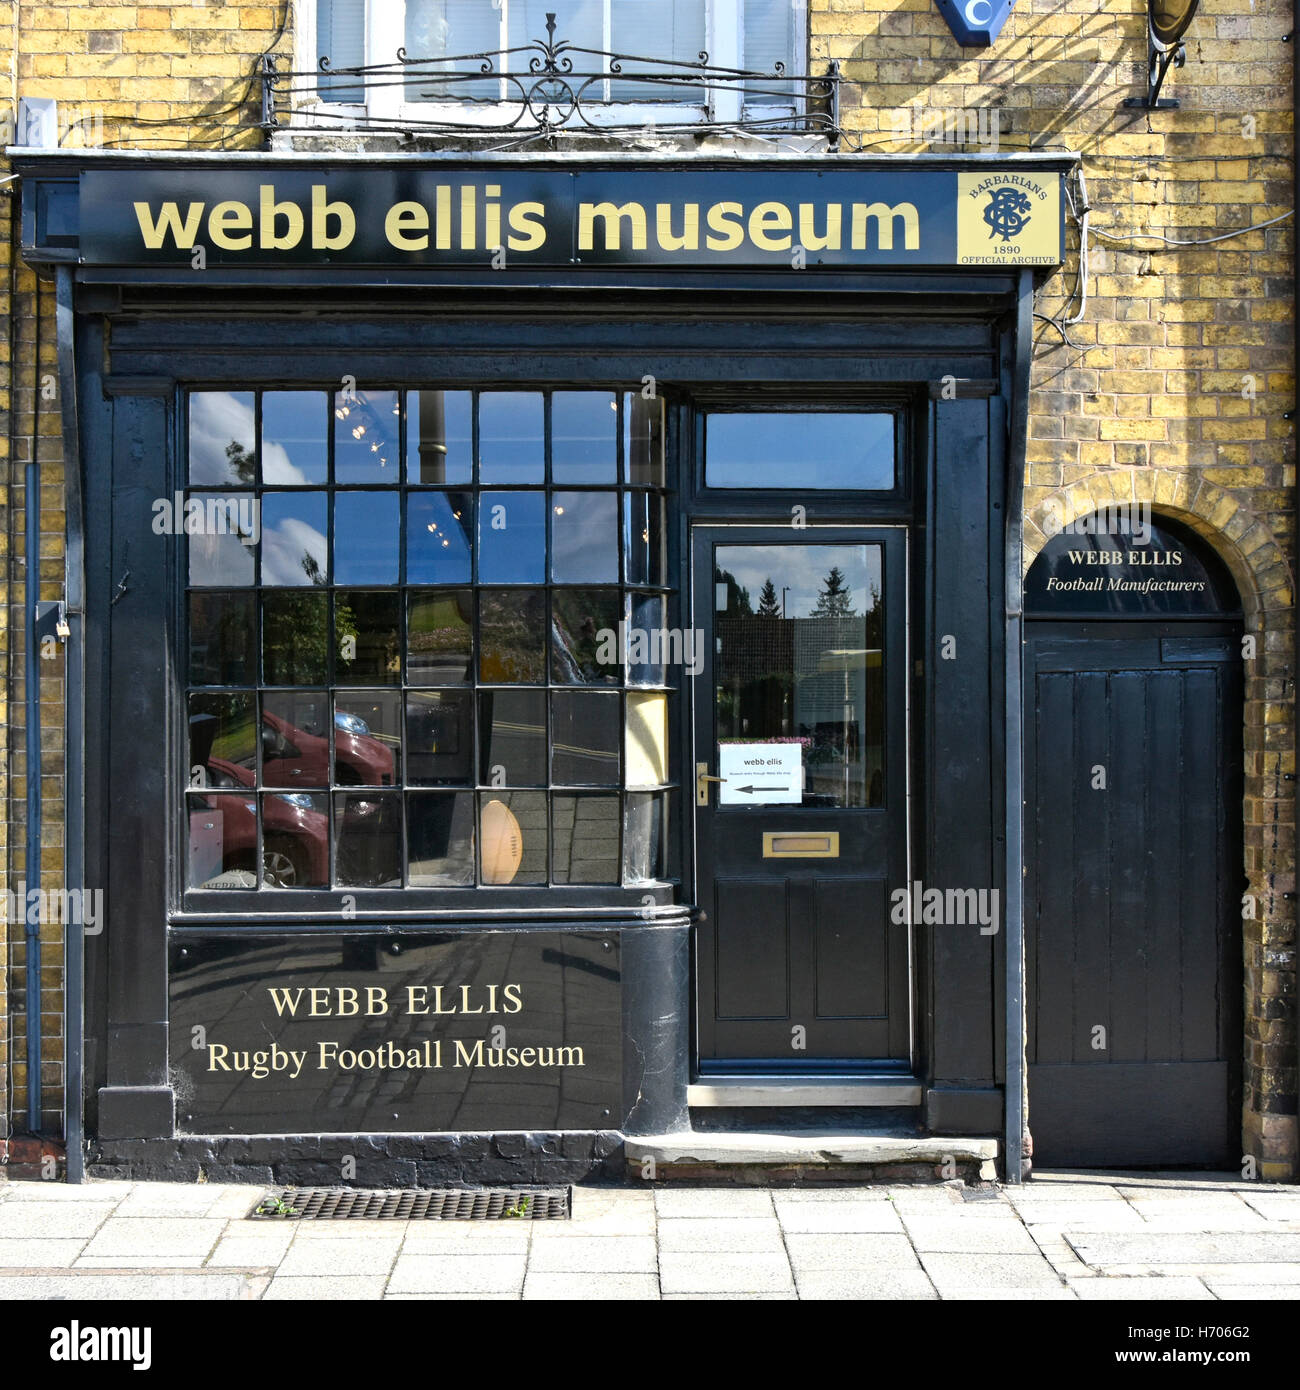 Web Ellis Museum in town center of Rugby Warwickshire England UK claimed birthplace of Rugby Football collection - Stock Image